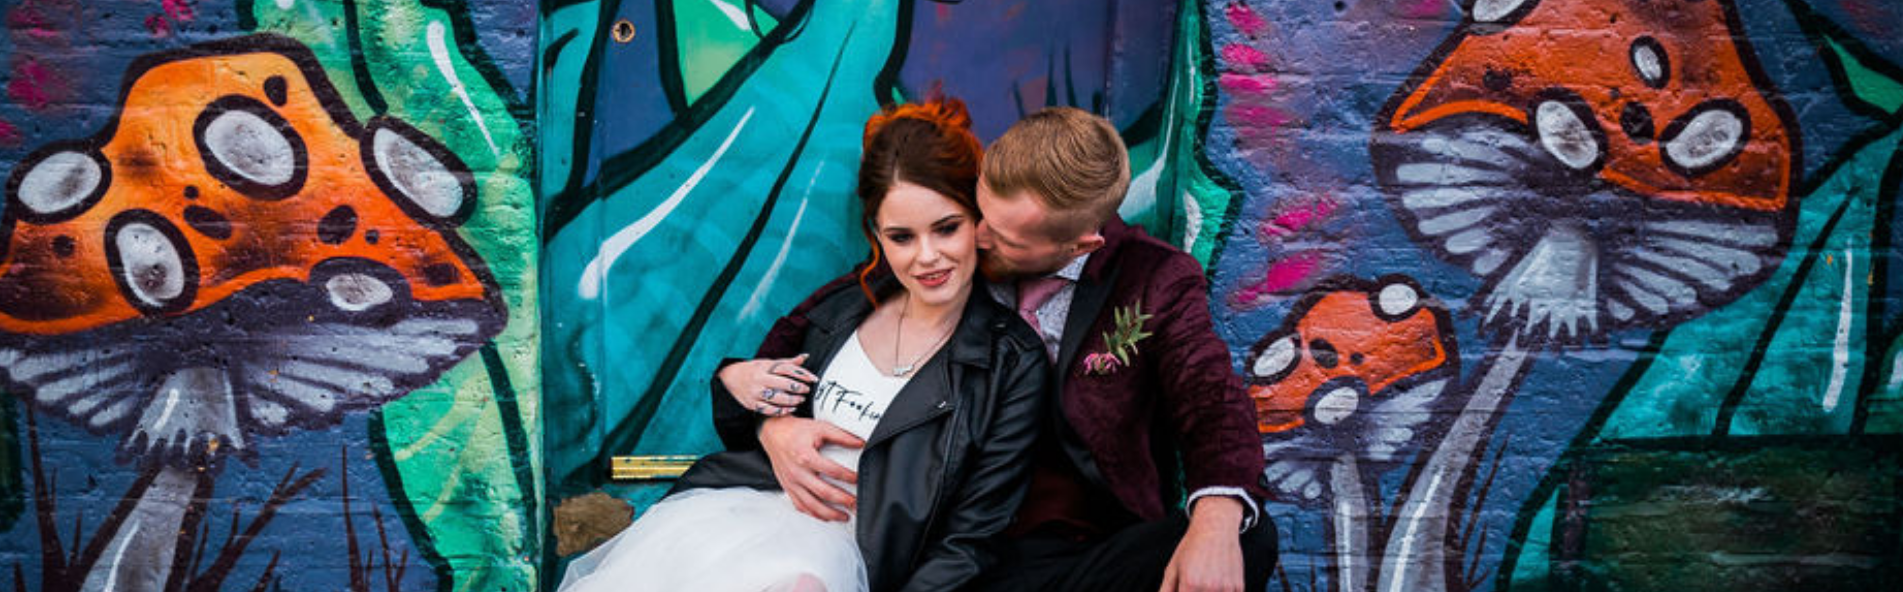 https://unconventionalwedding.co.uk/wp-content/uploads/2019/04/Kirsty-Rockett-Photography-Alternative-wedding-photo-unconventional-wedding-cover-photo.png